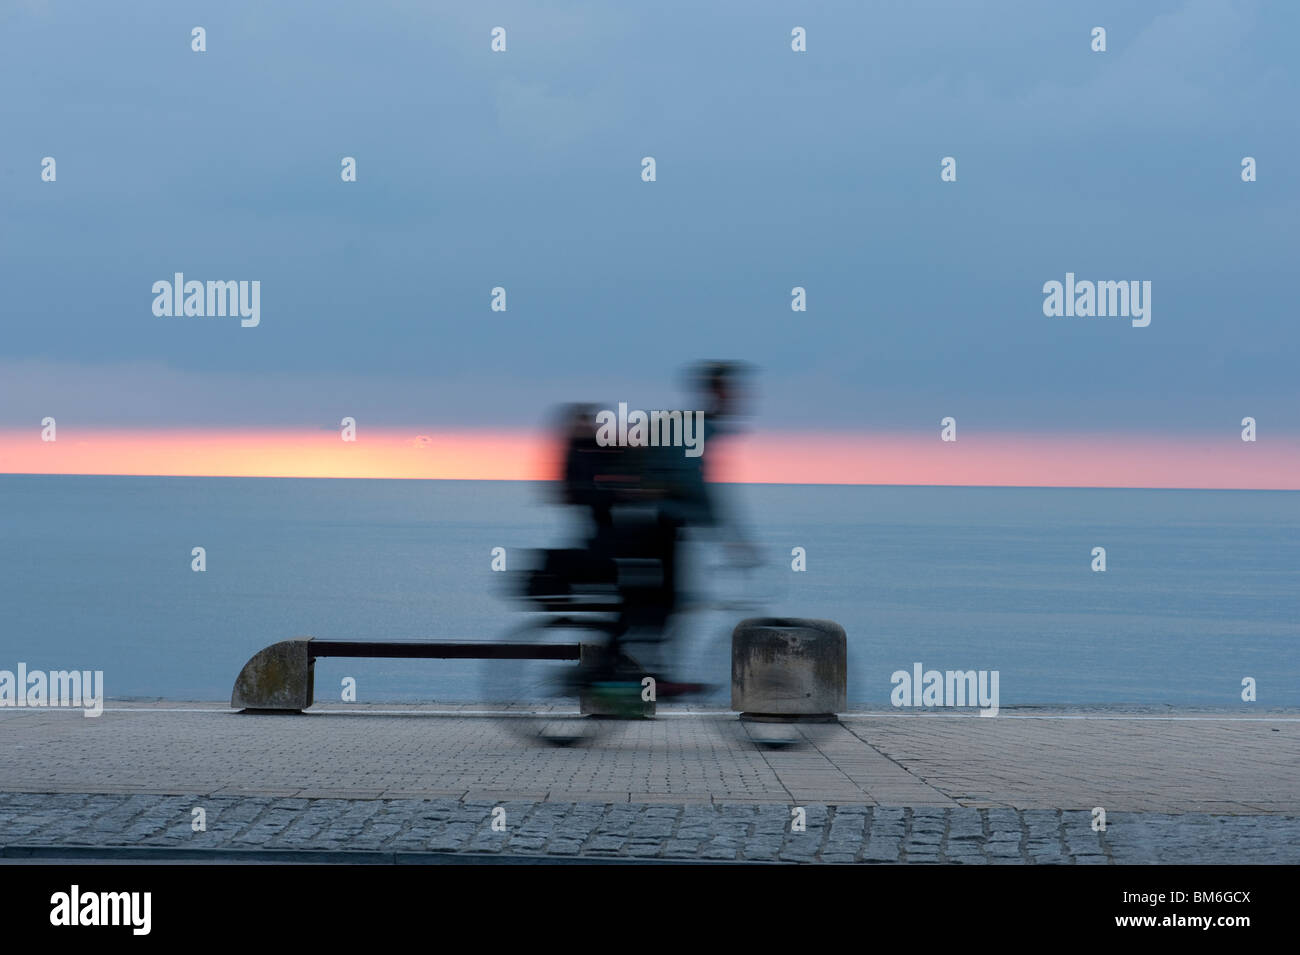 Motion blur of cyclist in ther Evening twilight, Aberystwyth promenade, seaside resort, west wales UK - Stock Image